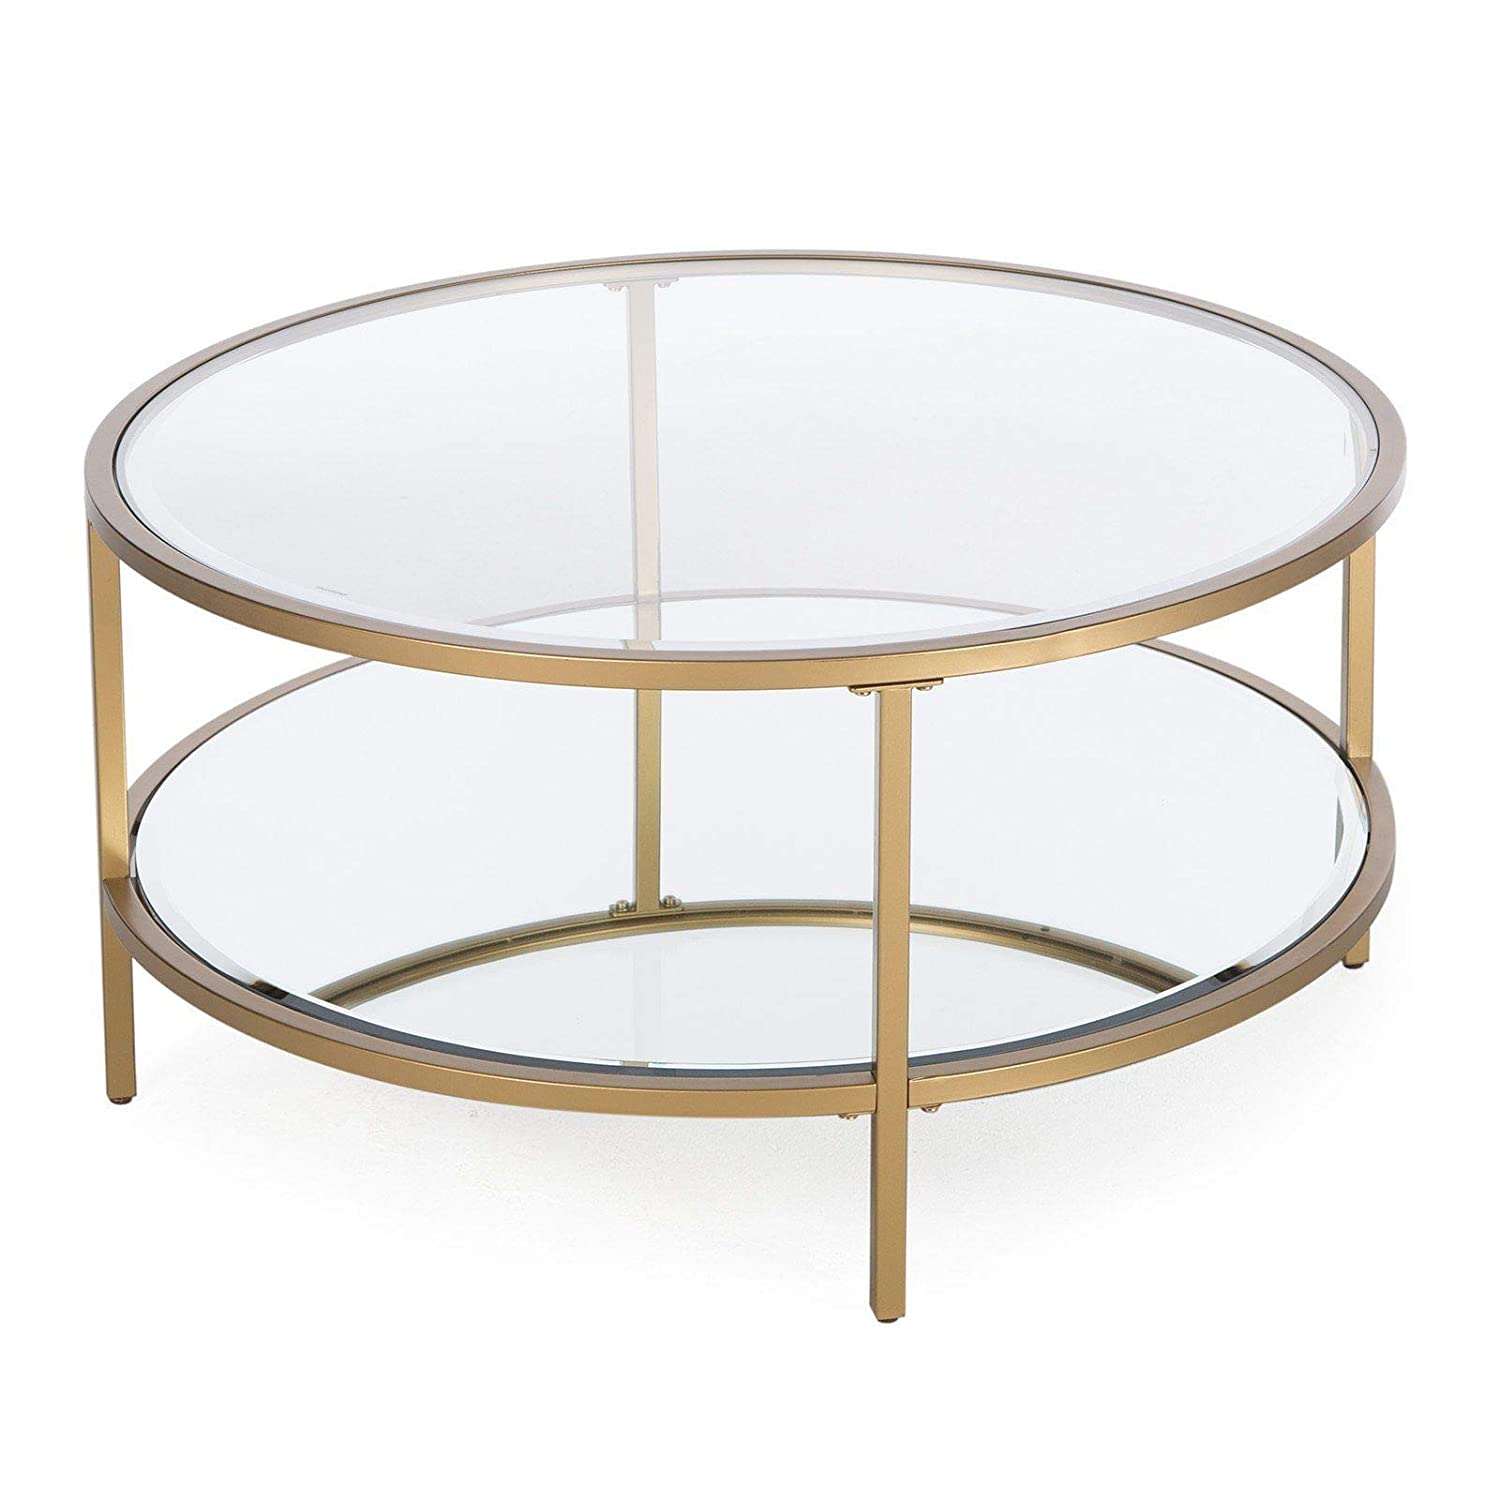 Amazon com contemporary modern glam metal glass round gold coffee table w shelf furniture kitchen dining